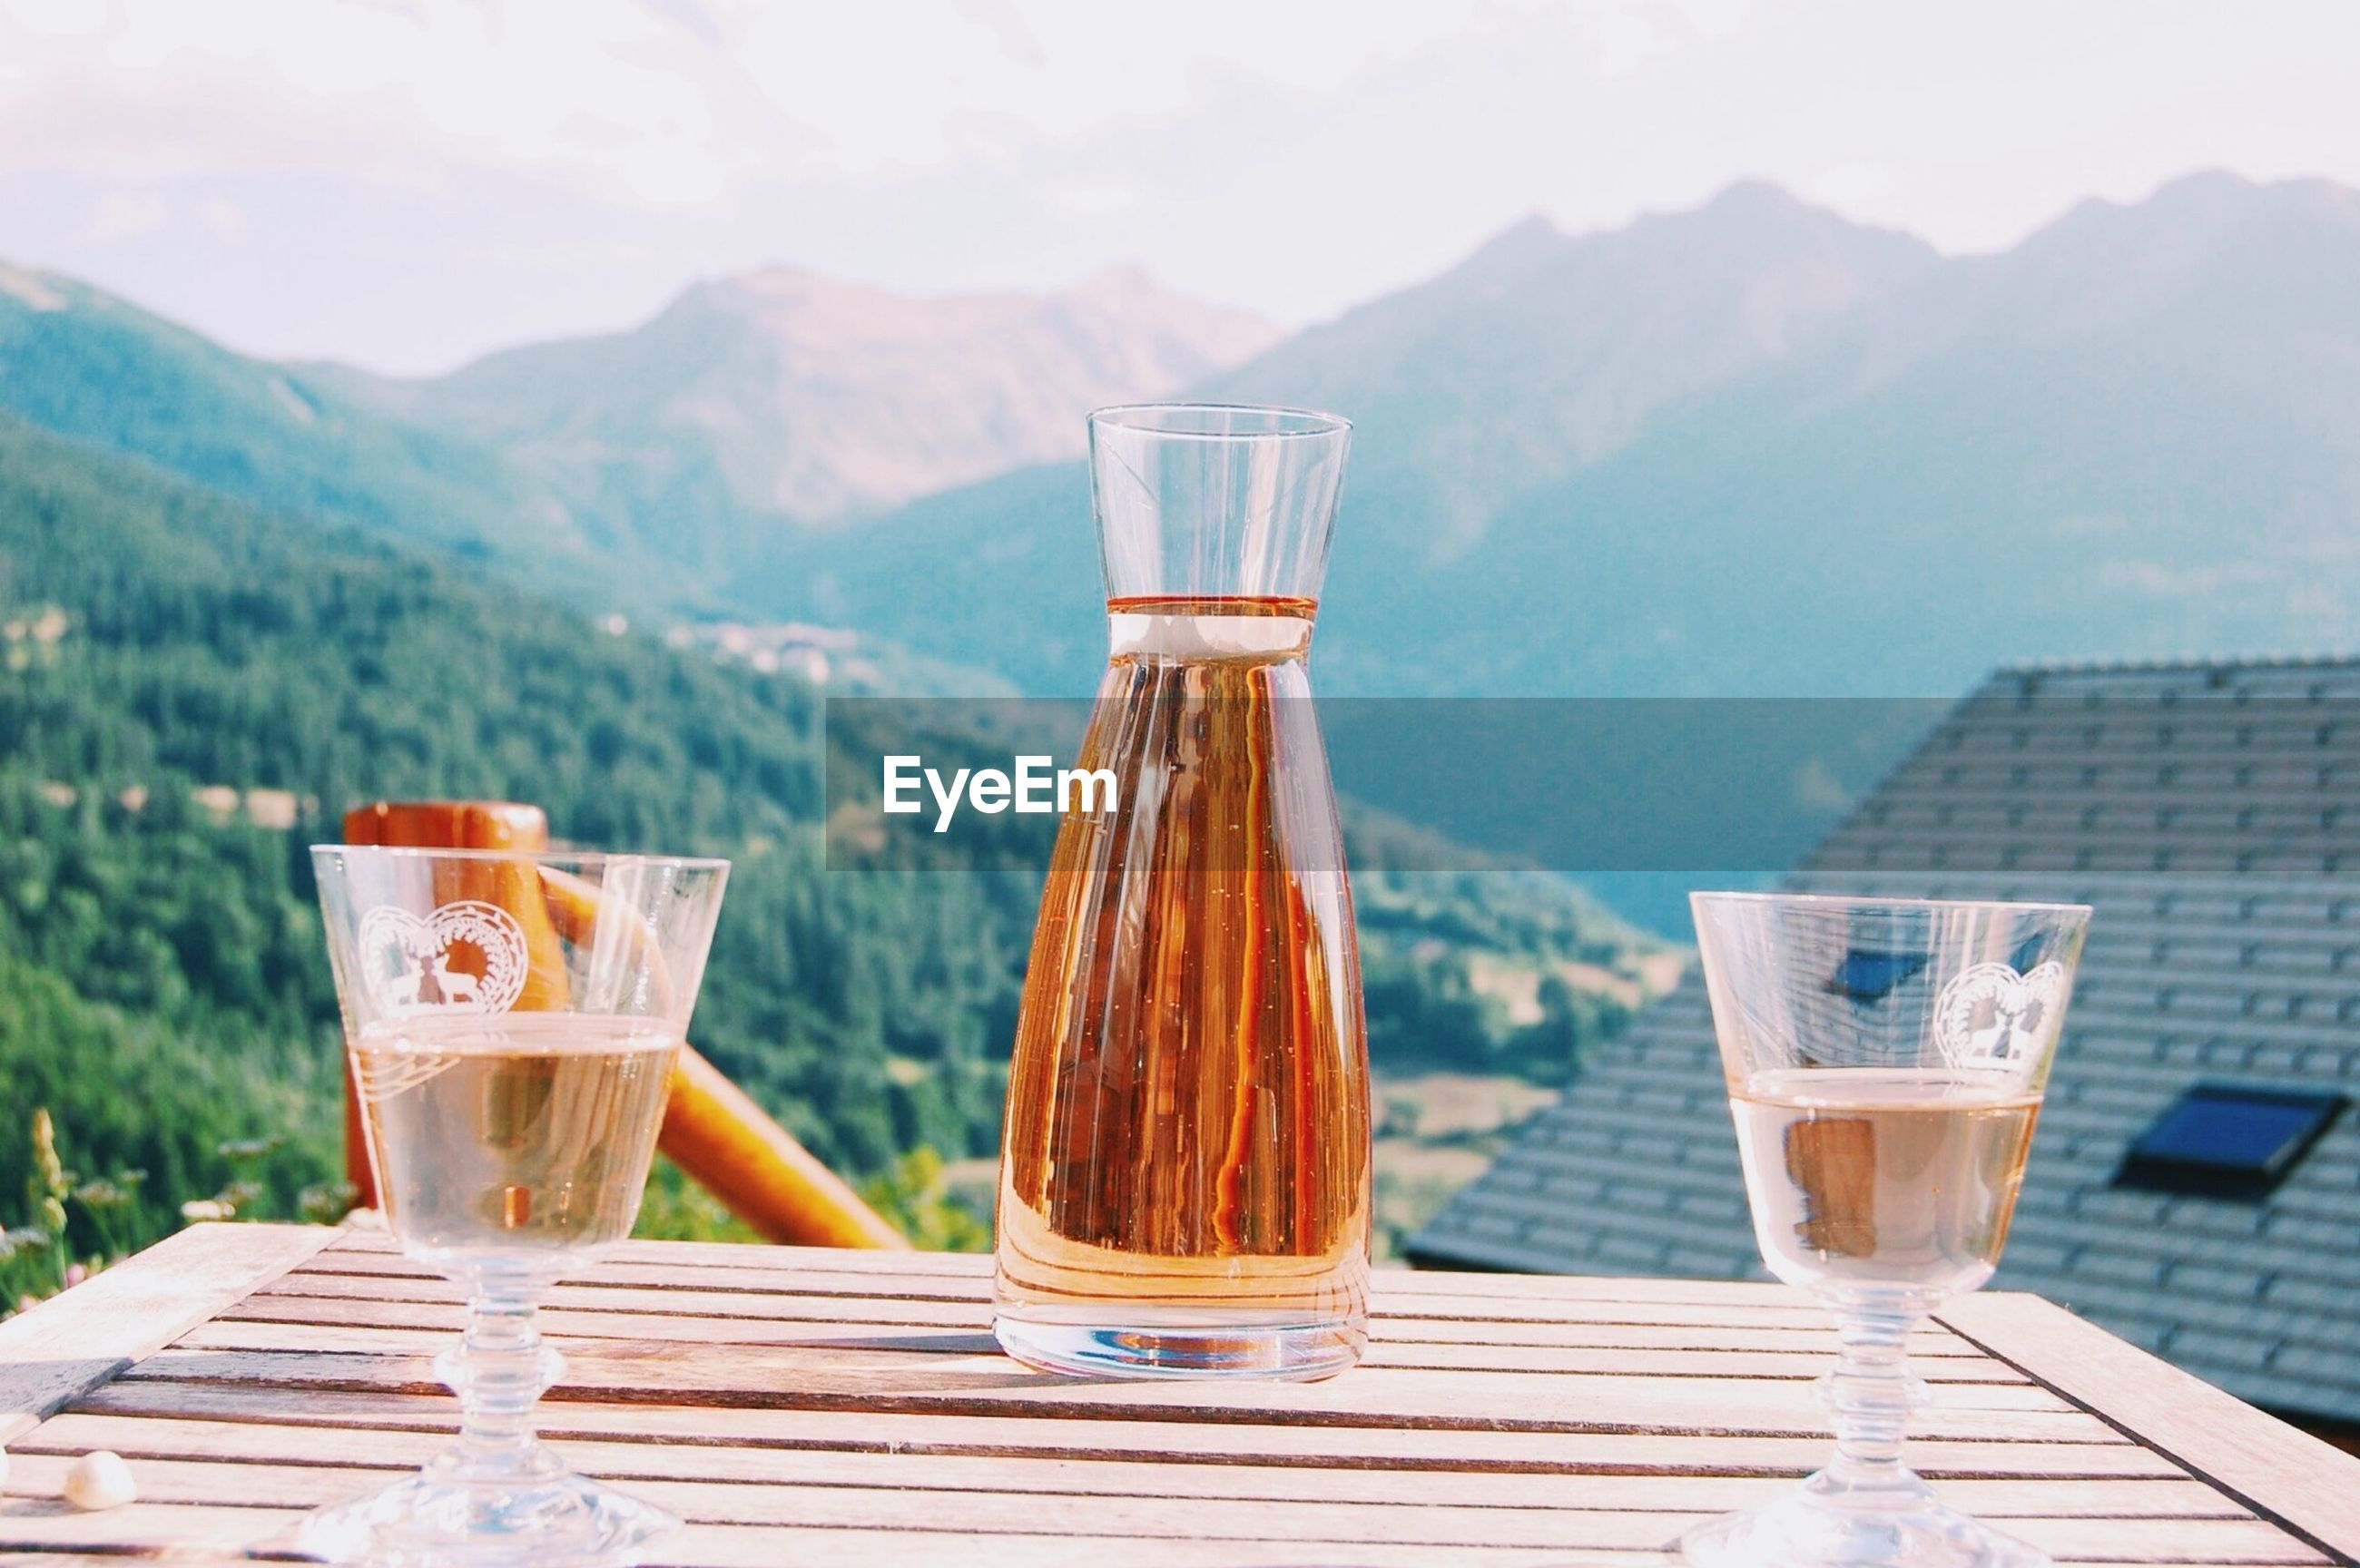 mountain, food and drink, table, drink, refreshment, freshness, wood - material, mountain range, sky, tranquil scene, landscape, day, still life, drinking glass, wooden, absence, tranquility, outdoors, empty, no people